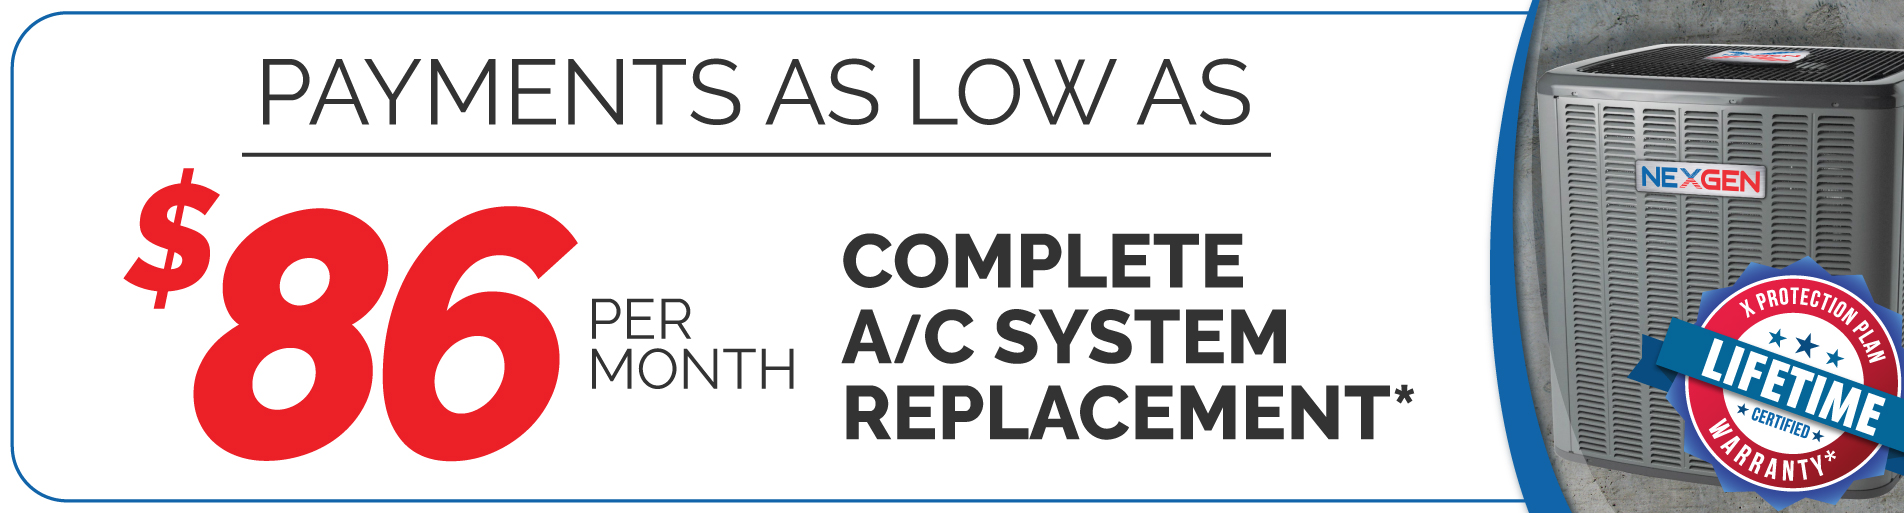 Complete AC System Replacement